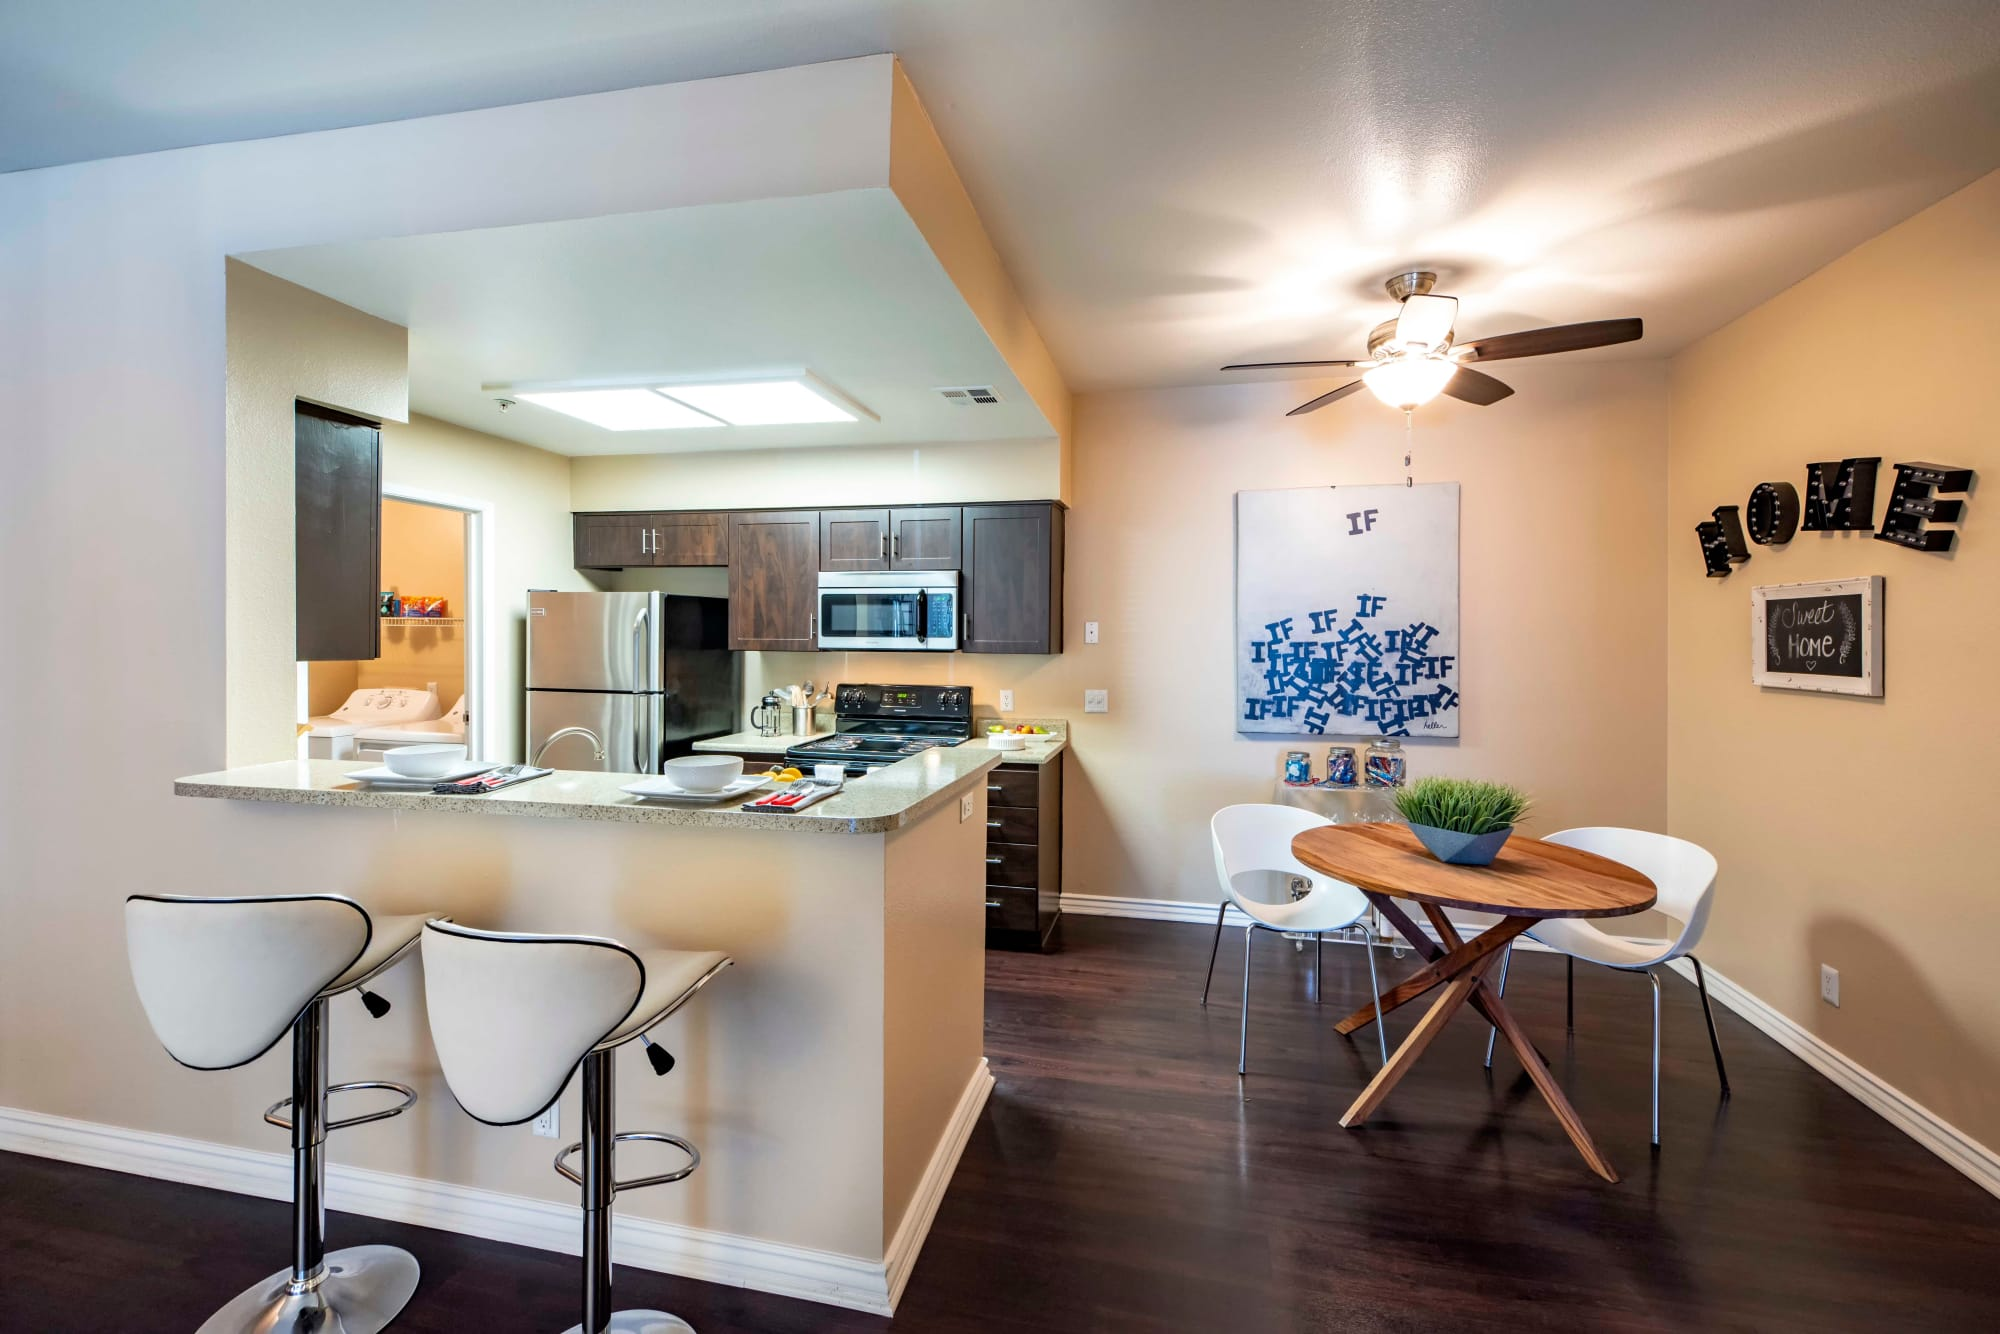 Brown Renovated Kitchen and dining room view with Stainless steel appliances